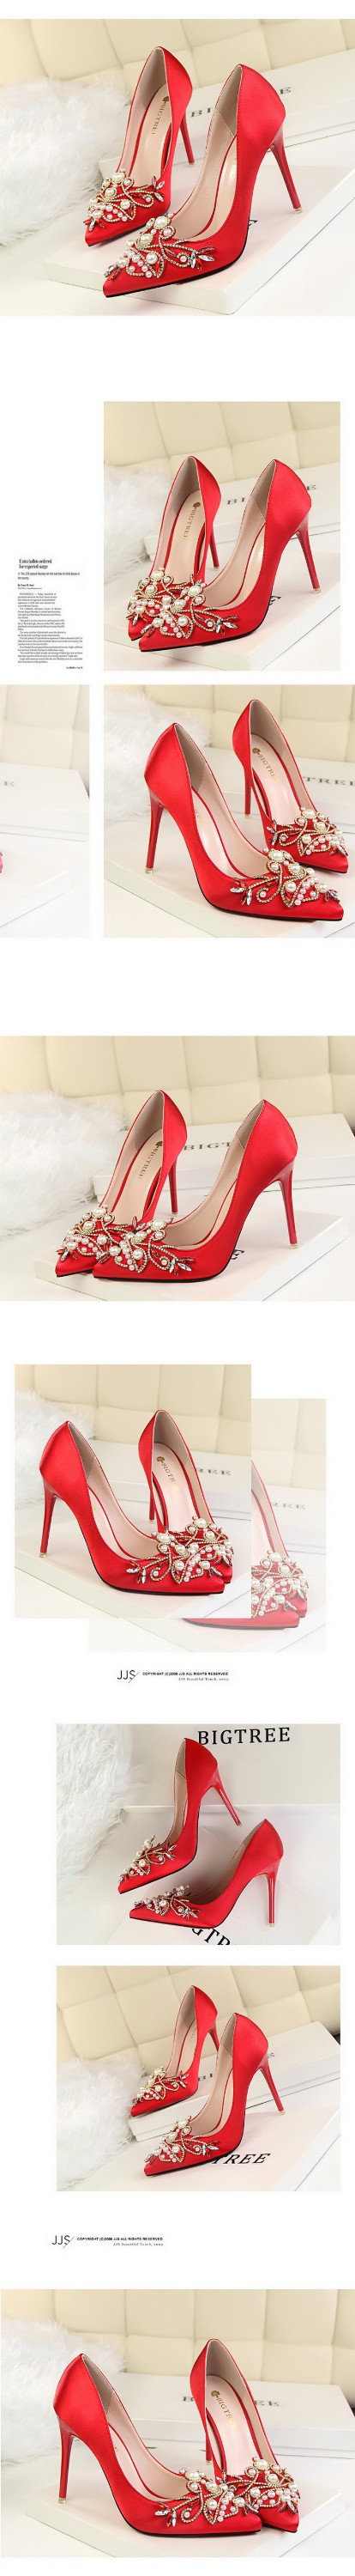 2017 new design heel shoes women red bottom shoes wholesale bridal shoes